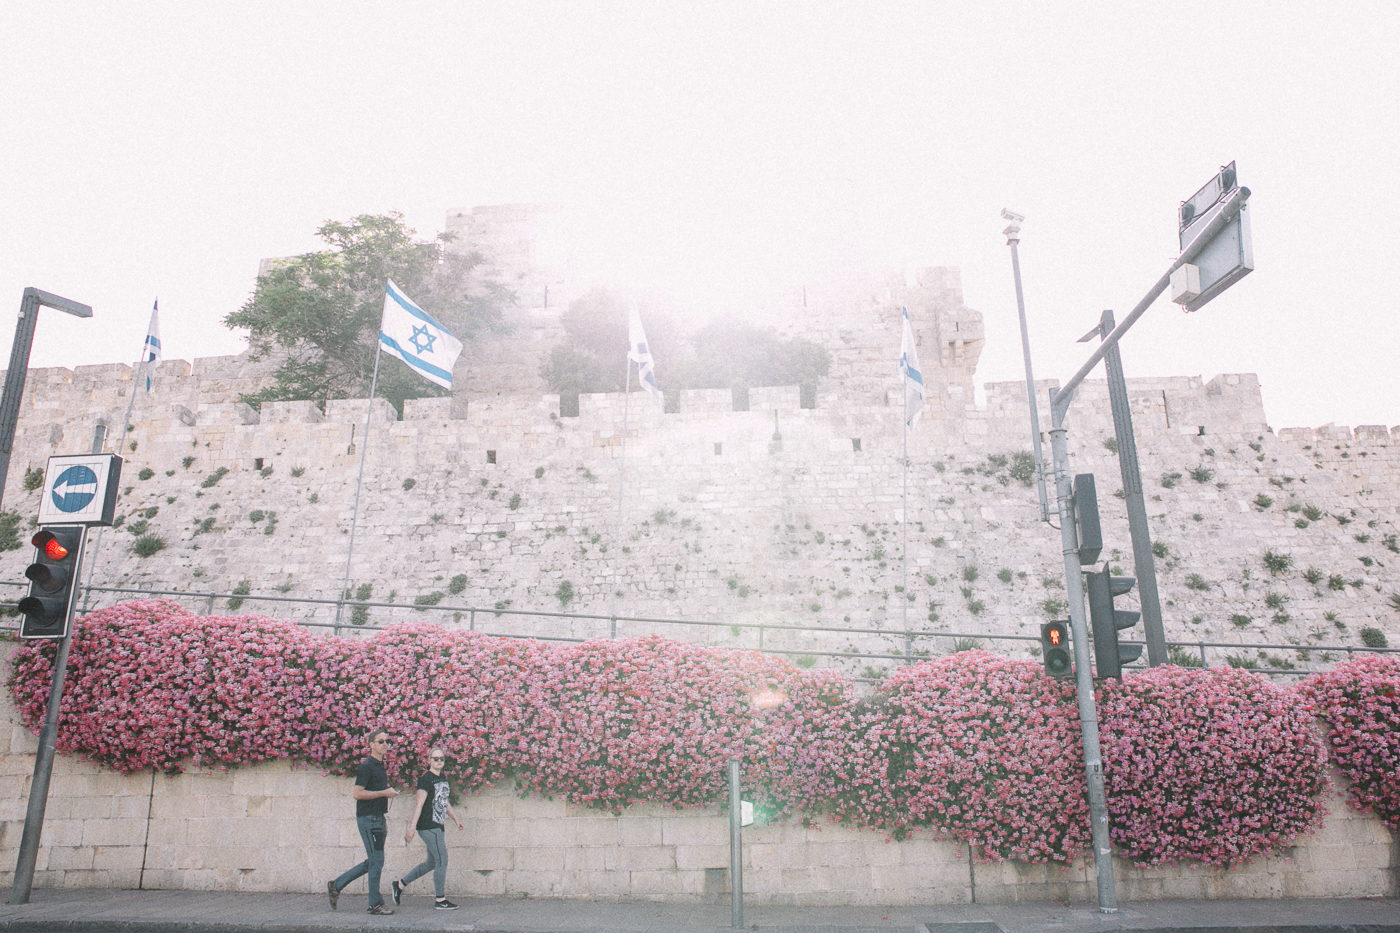 Heart To Heart: Traveling to Israel - Safety | Love Daily Dose